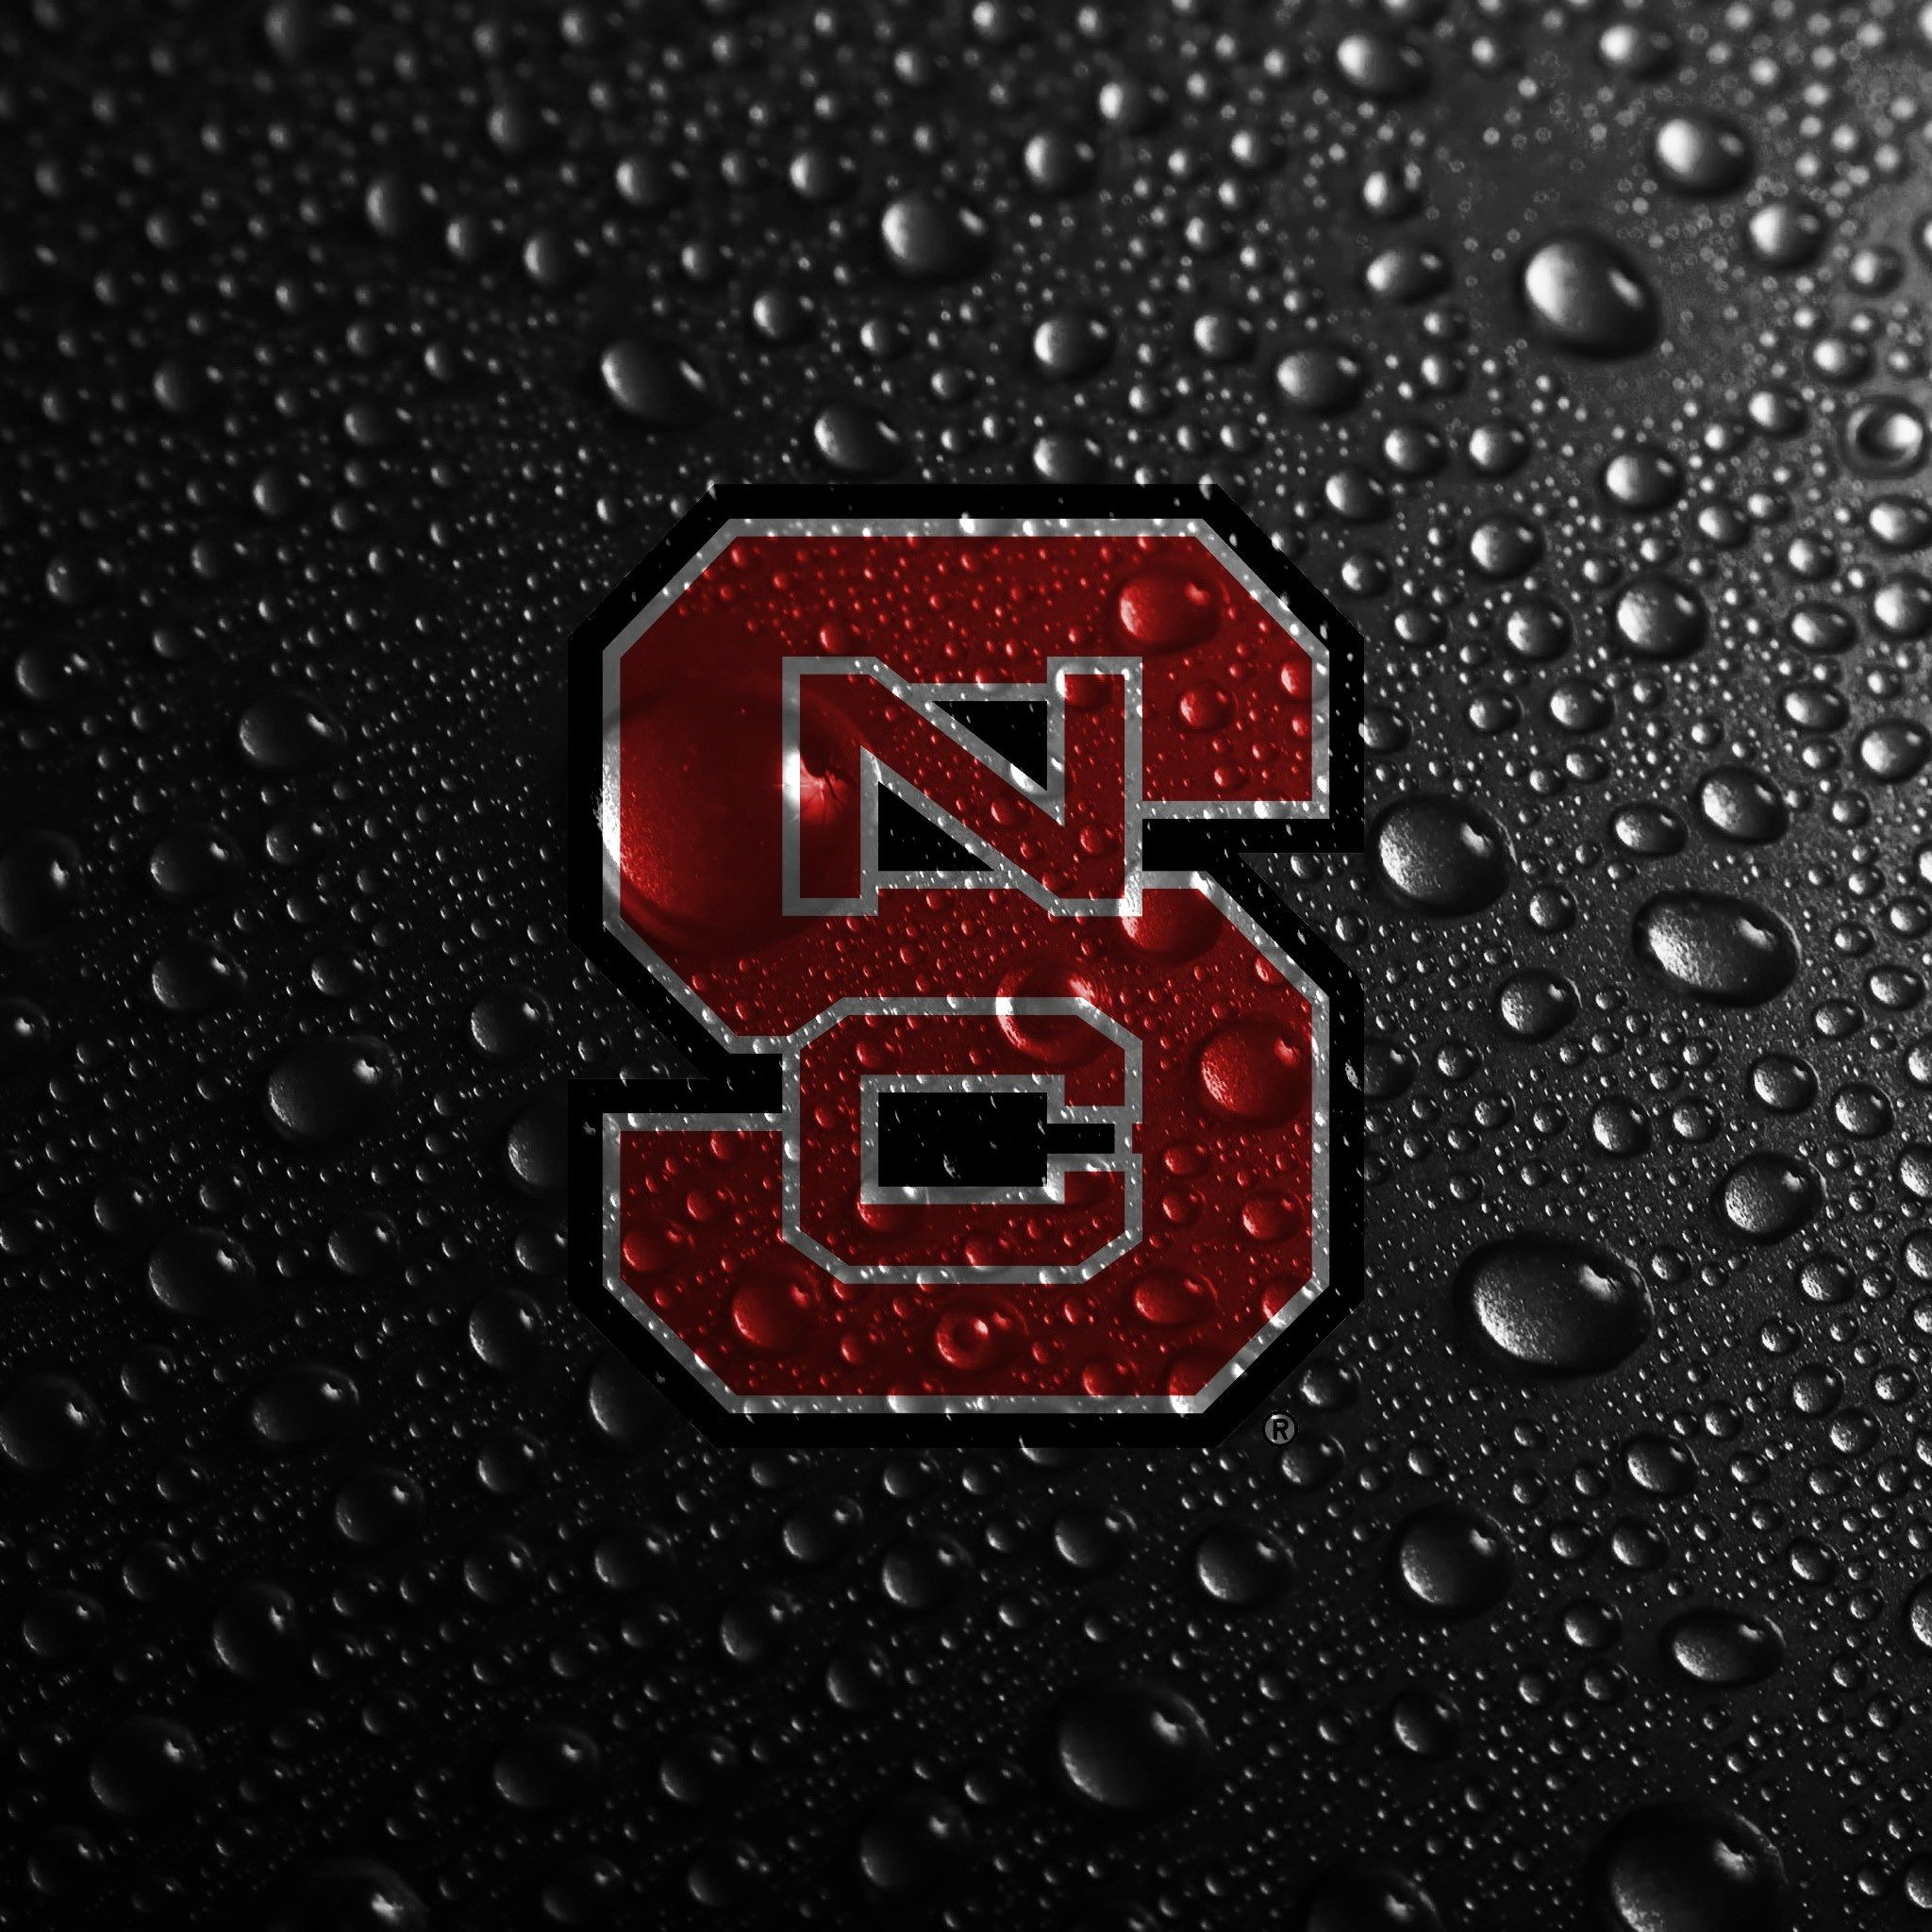 2048x2048 NC State Wallpapers - Dave from Carter-Finley